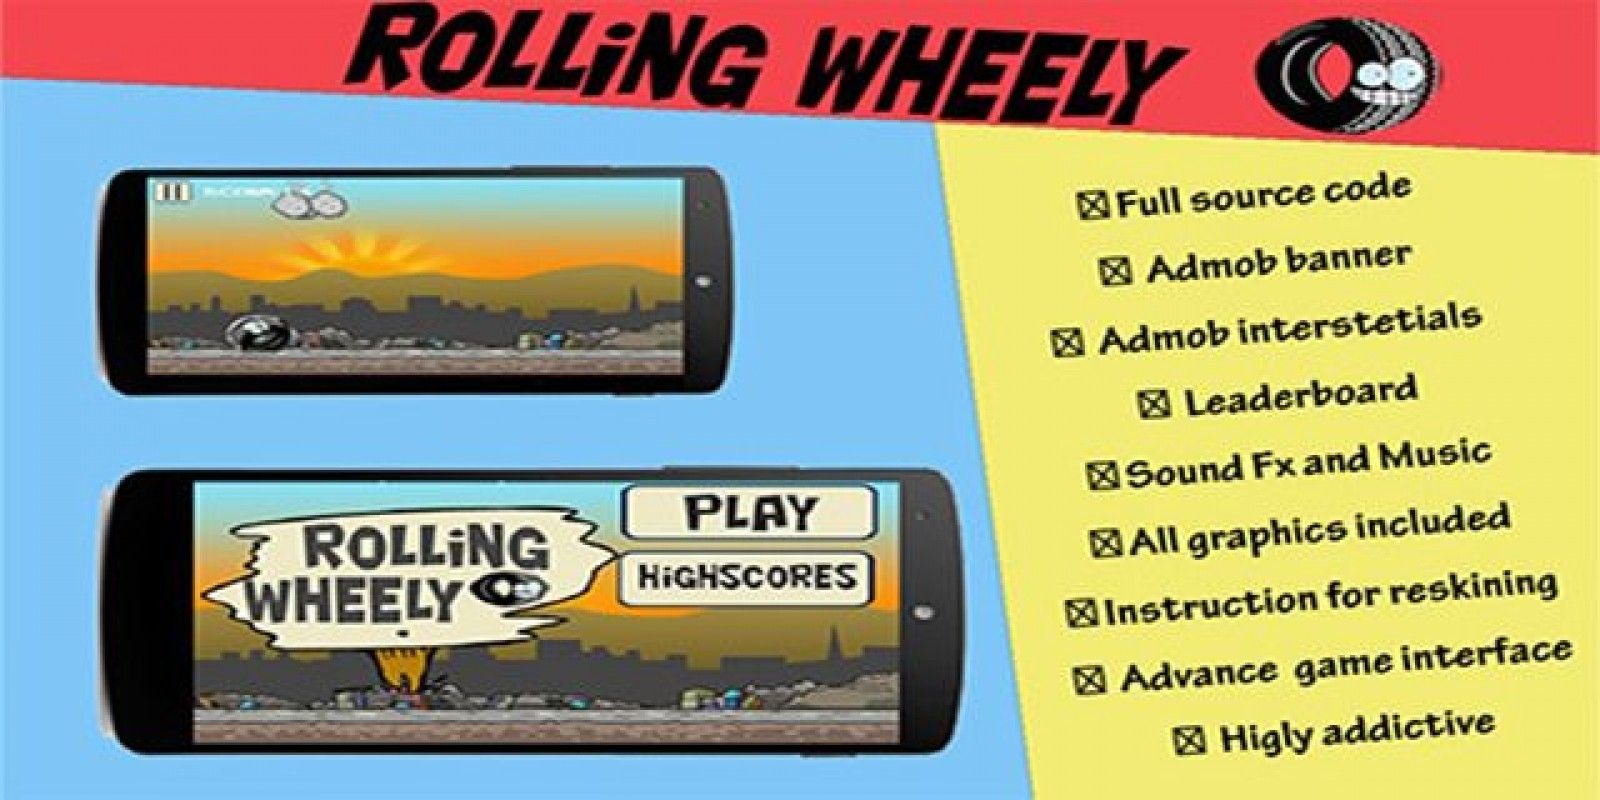 Rolling Wheely with Admob - Android Source Code